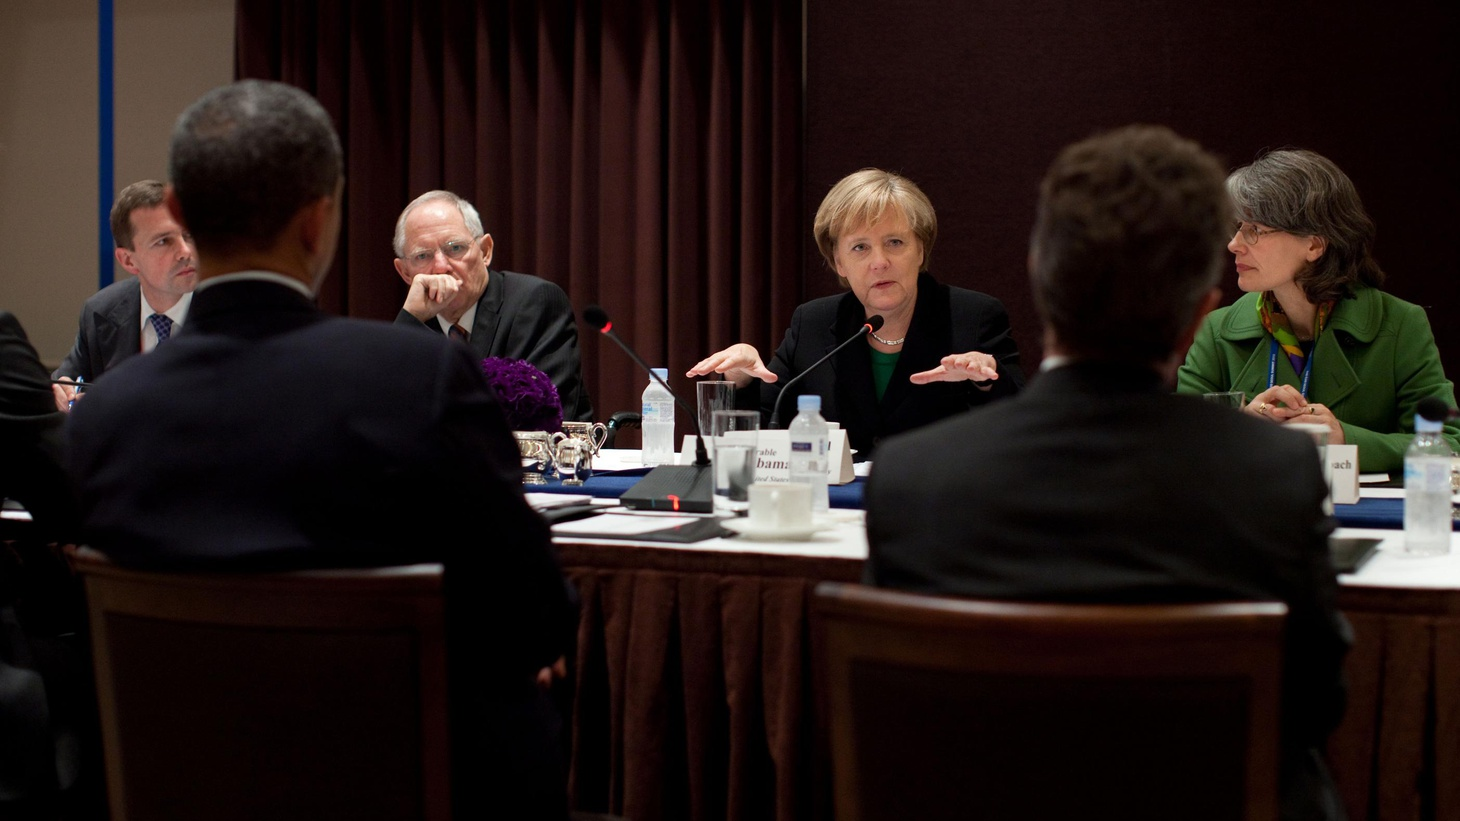 Sound and fury over Healthcare.gov, listening in on Angela Merkel, and JP Morgan.